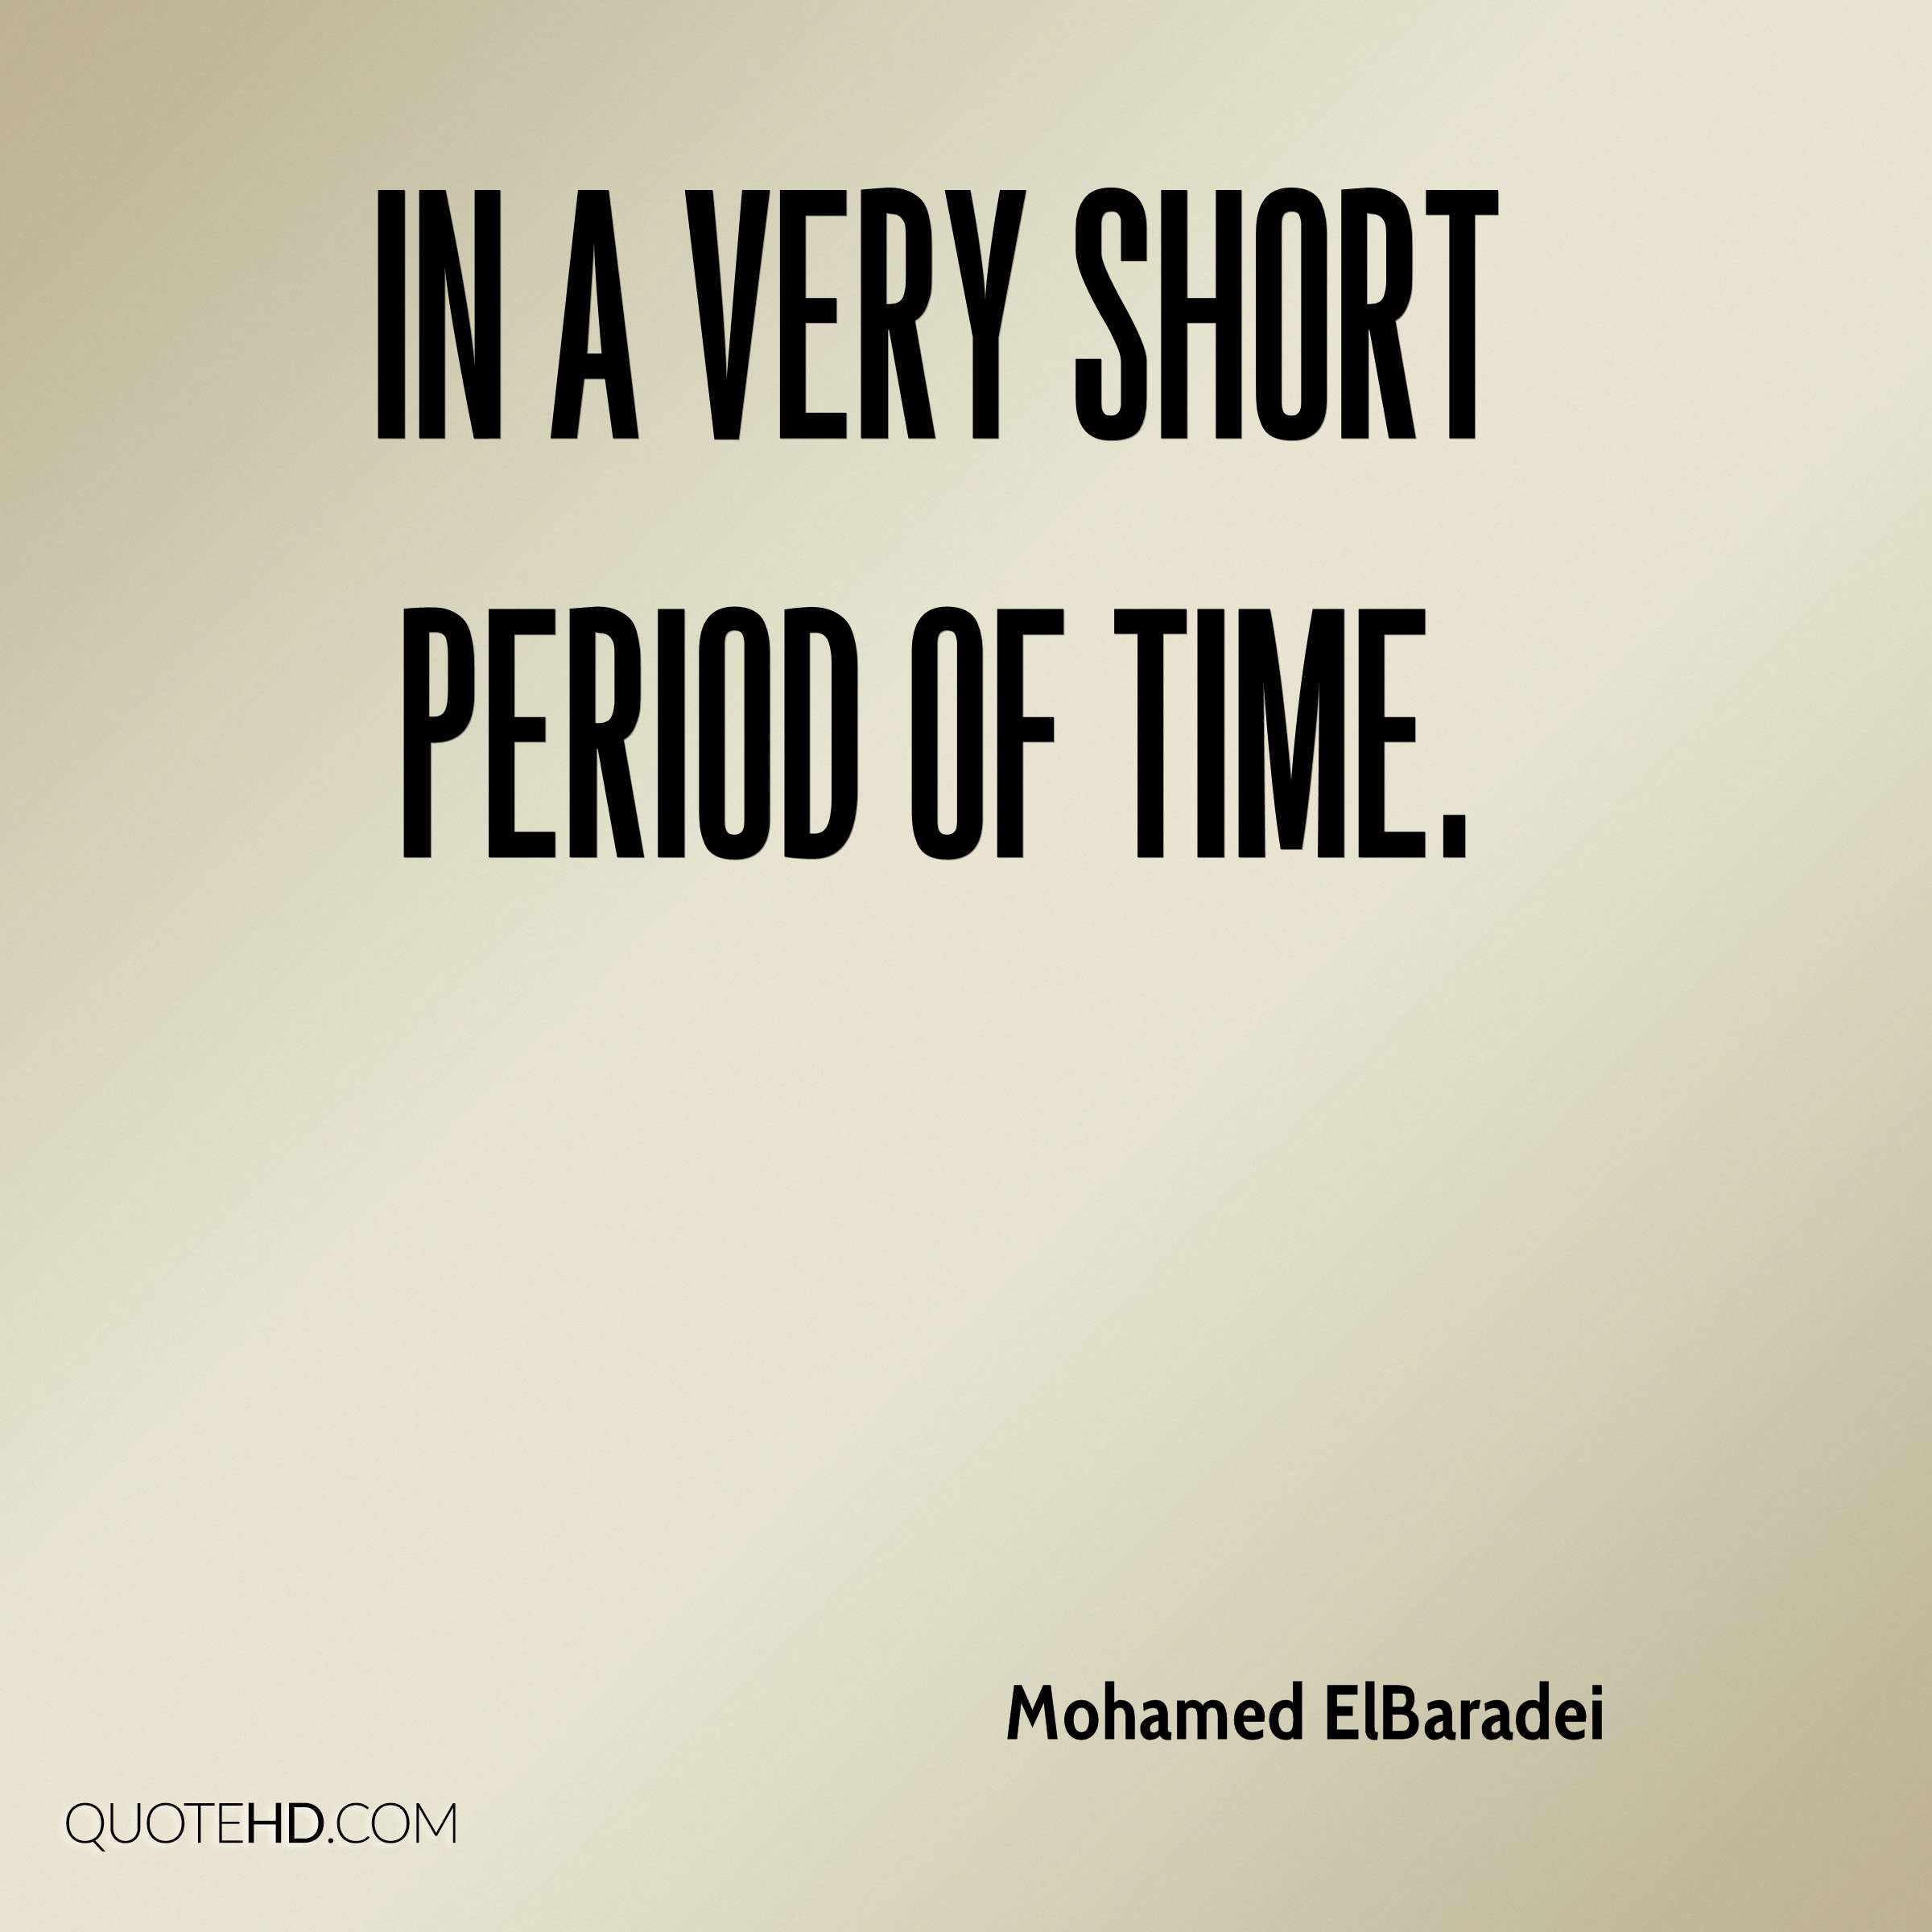 Mohamed ElBaradei Quotes. QuotesGram